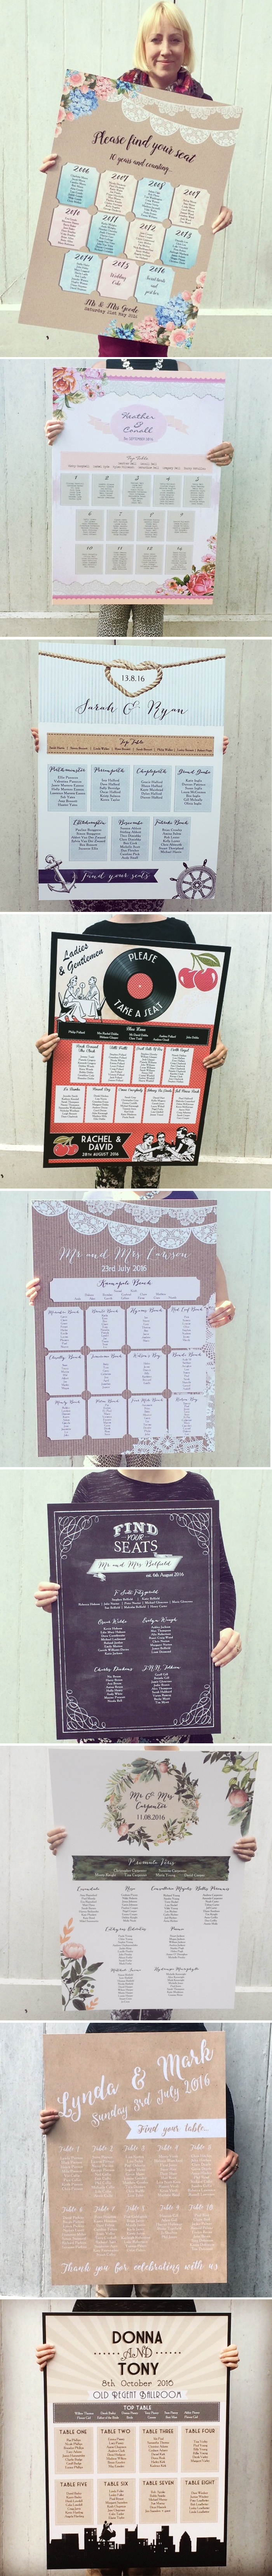 Wedding_Table_Seating_Plan_Chart_Board_Poster_Print_Ideas_Inspiration_Designs_DIY_Printable_Download_